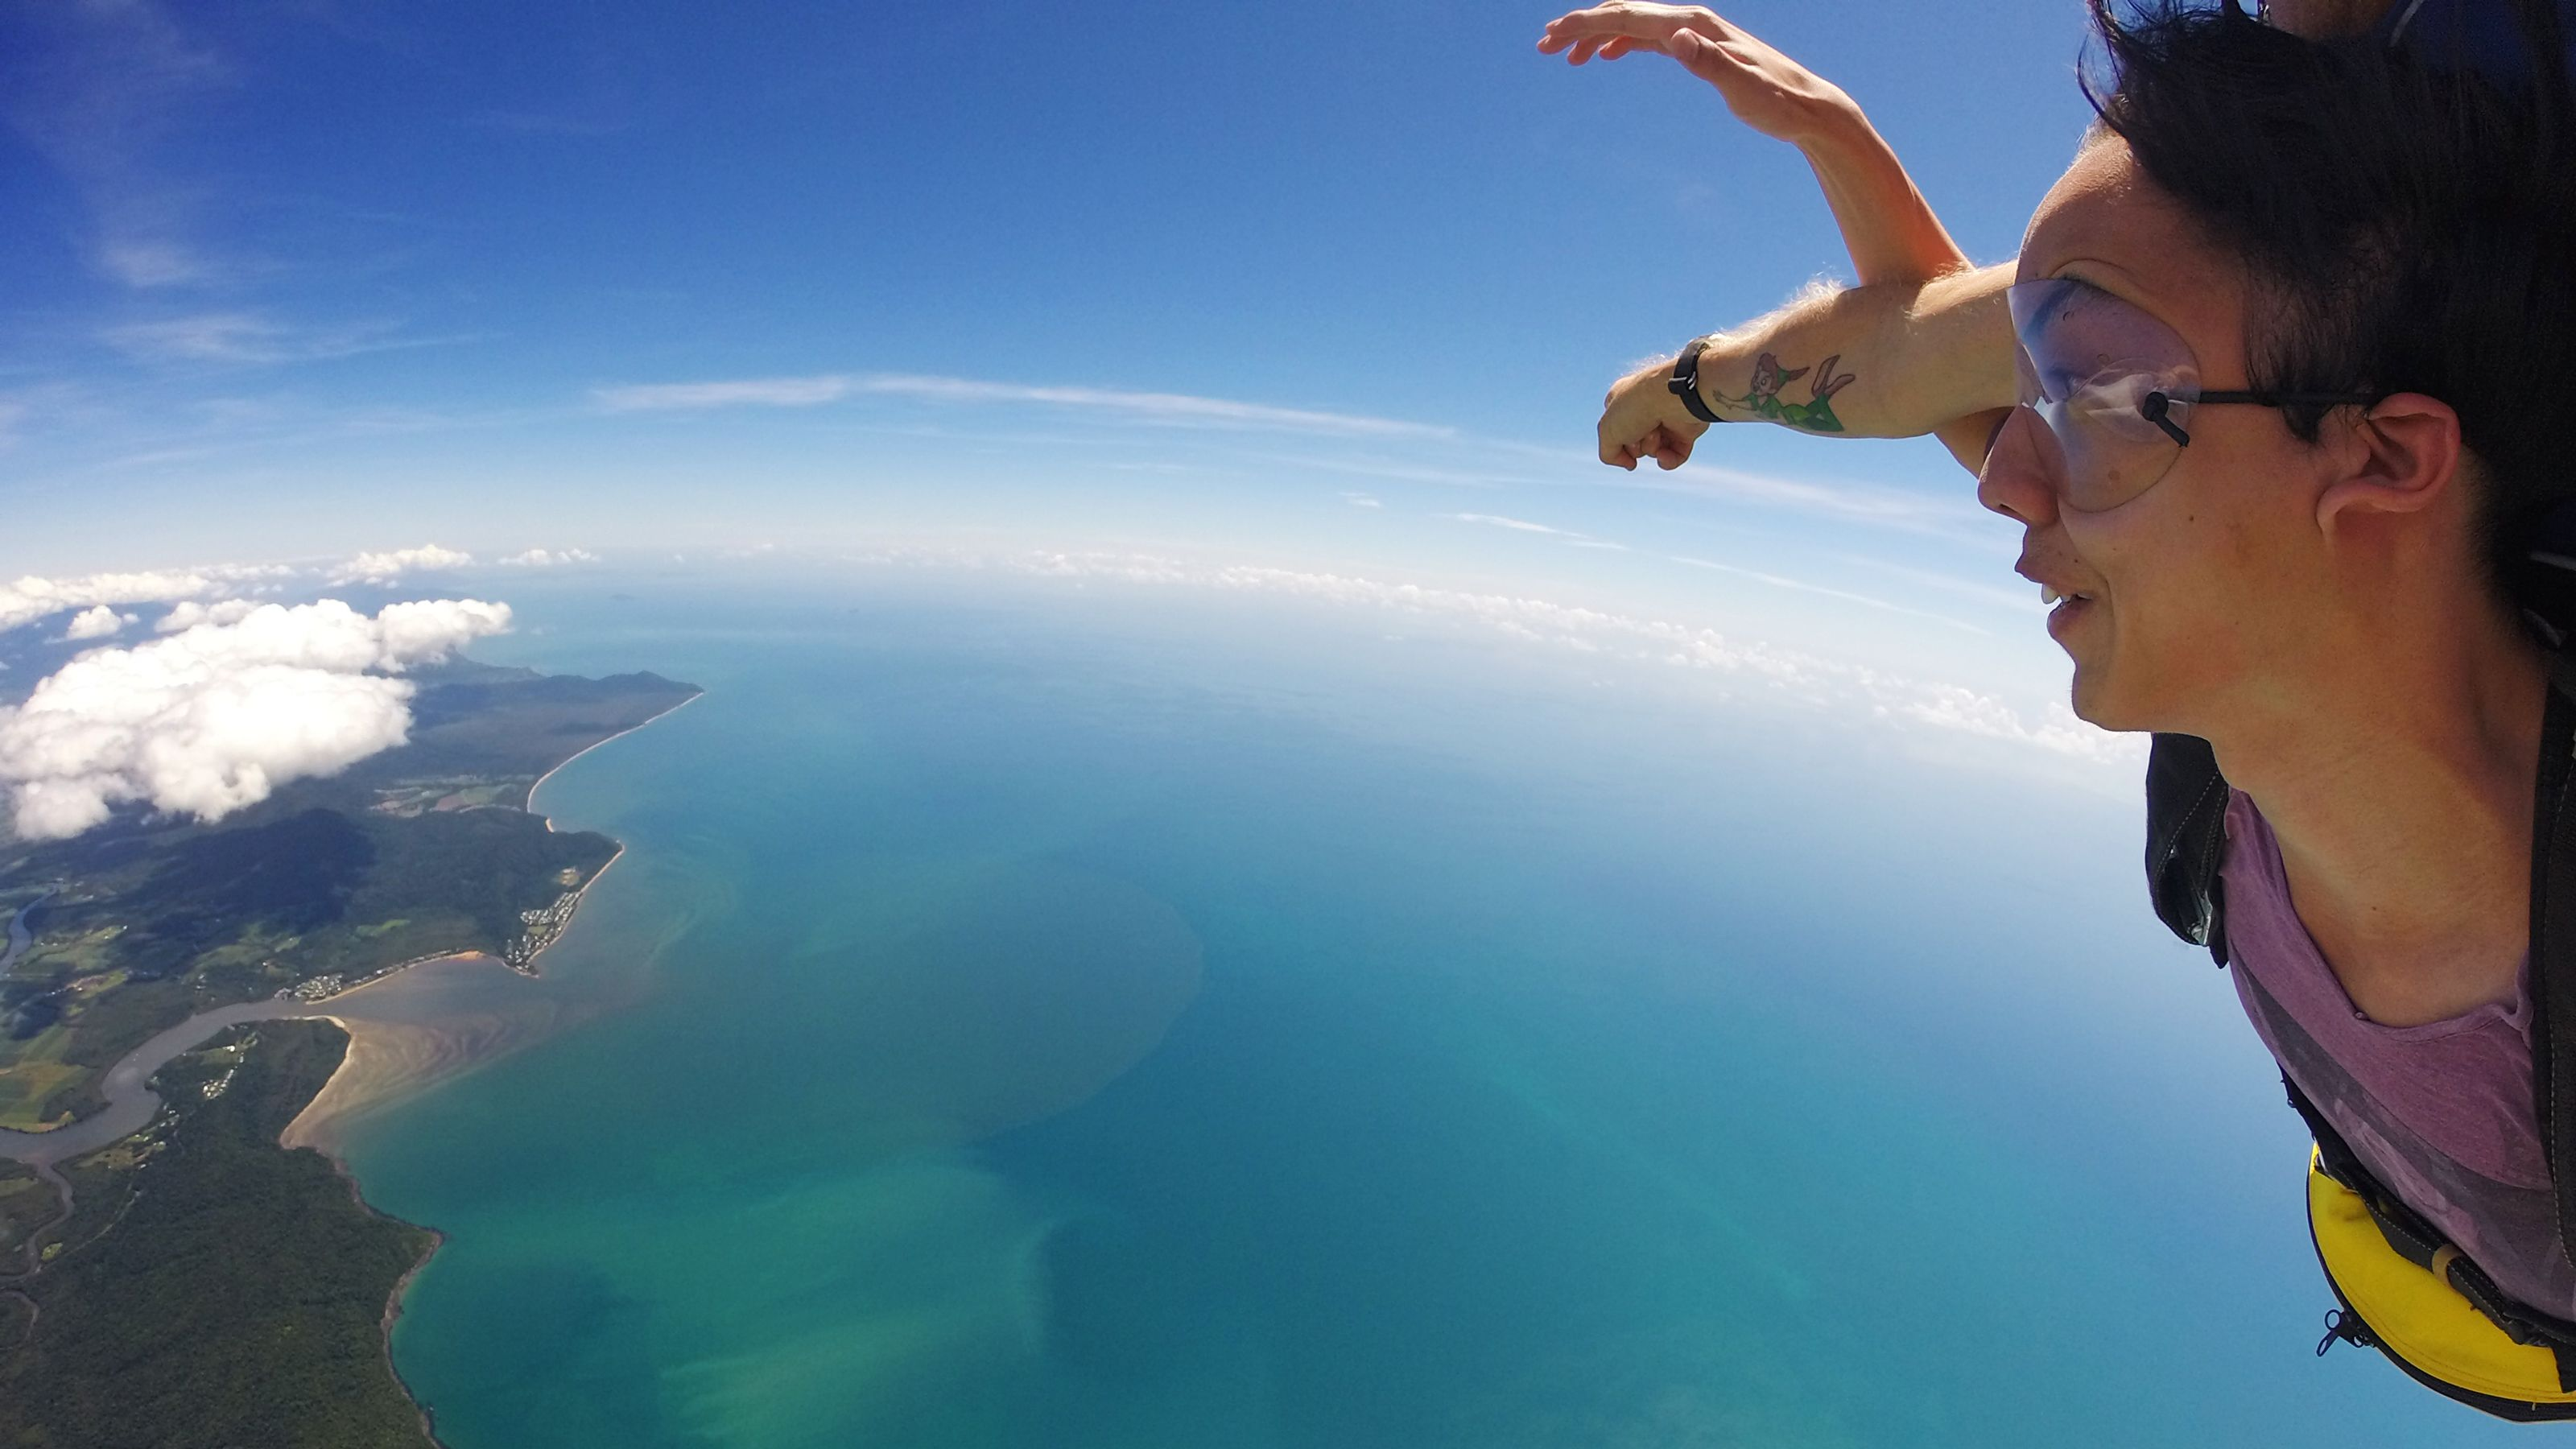 Girl free falling in Tandem Skydive in Cairns Australia